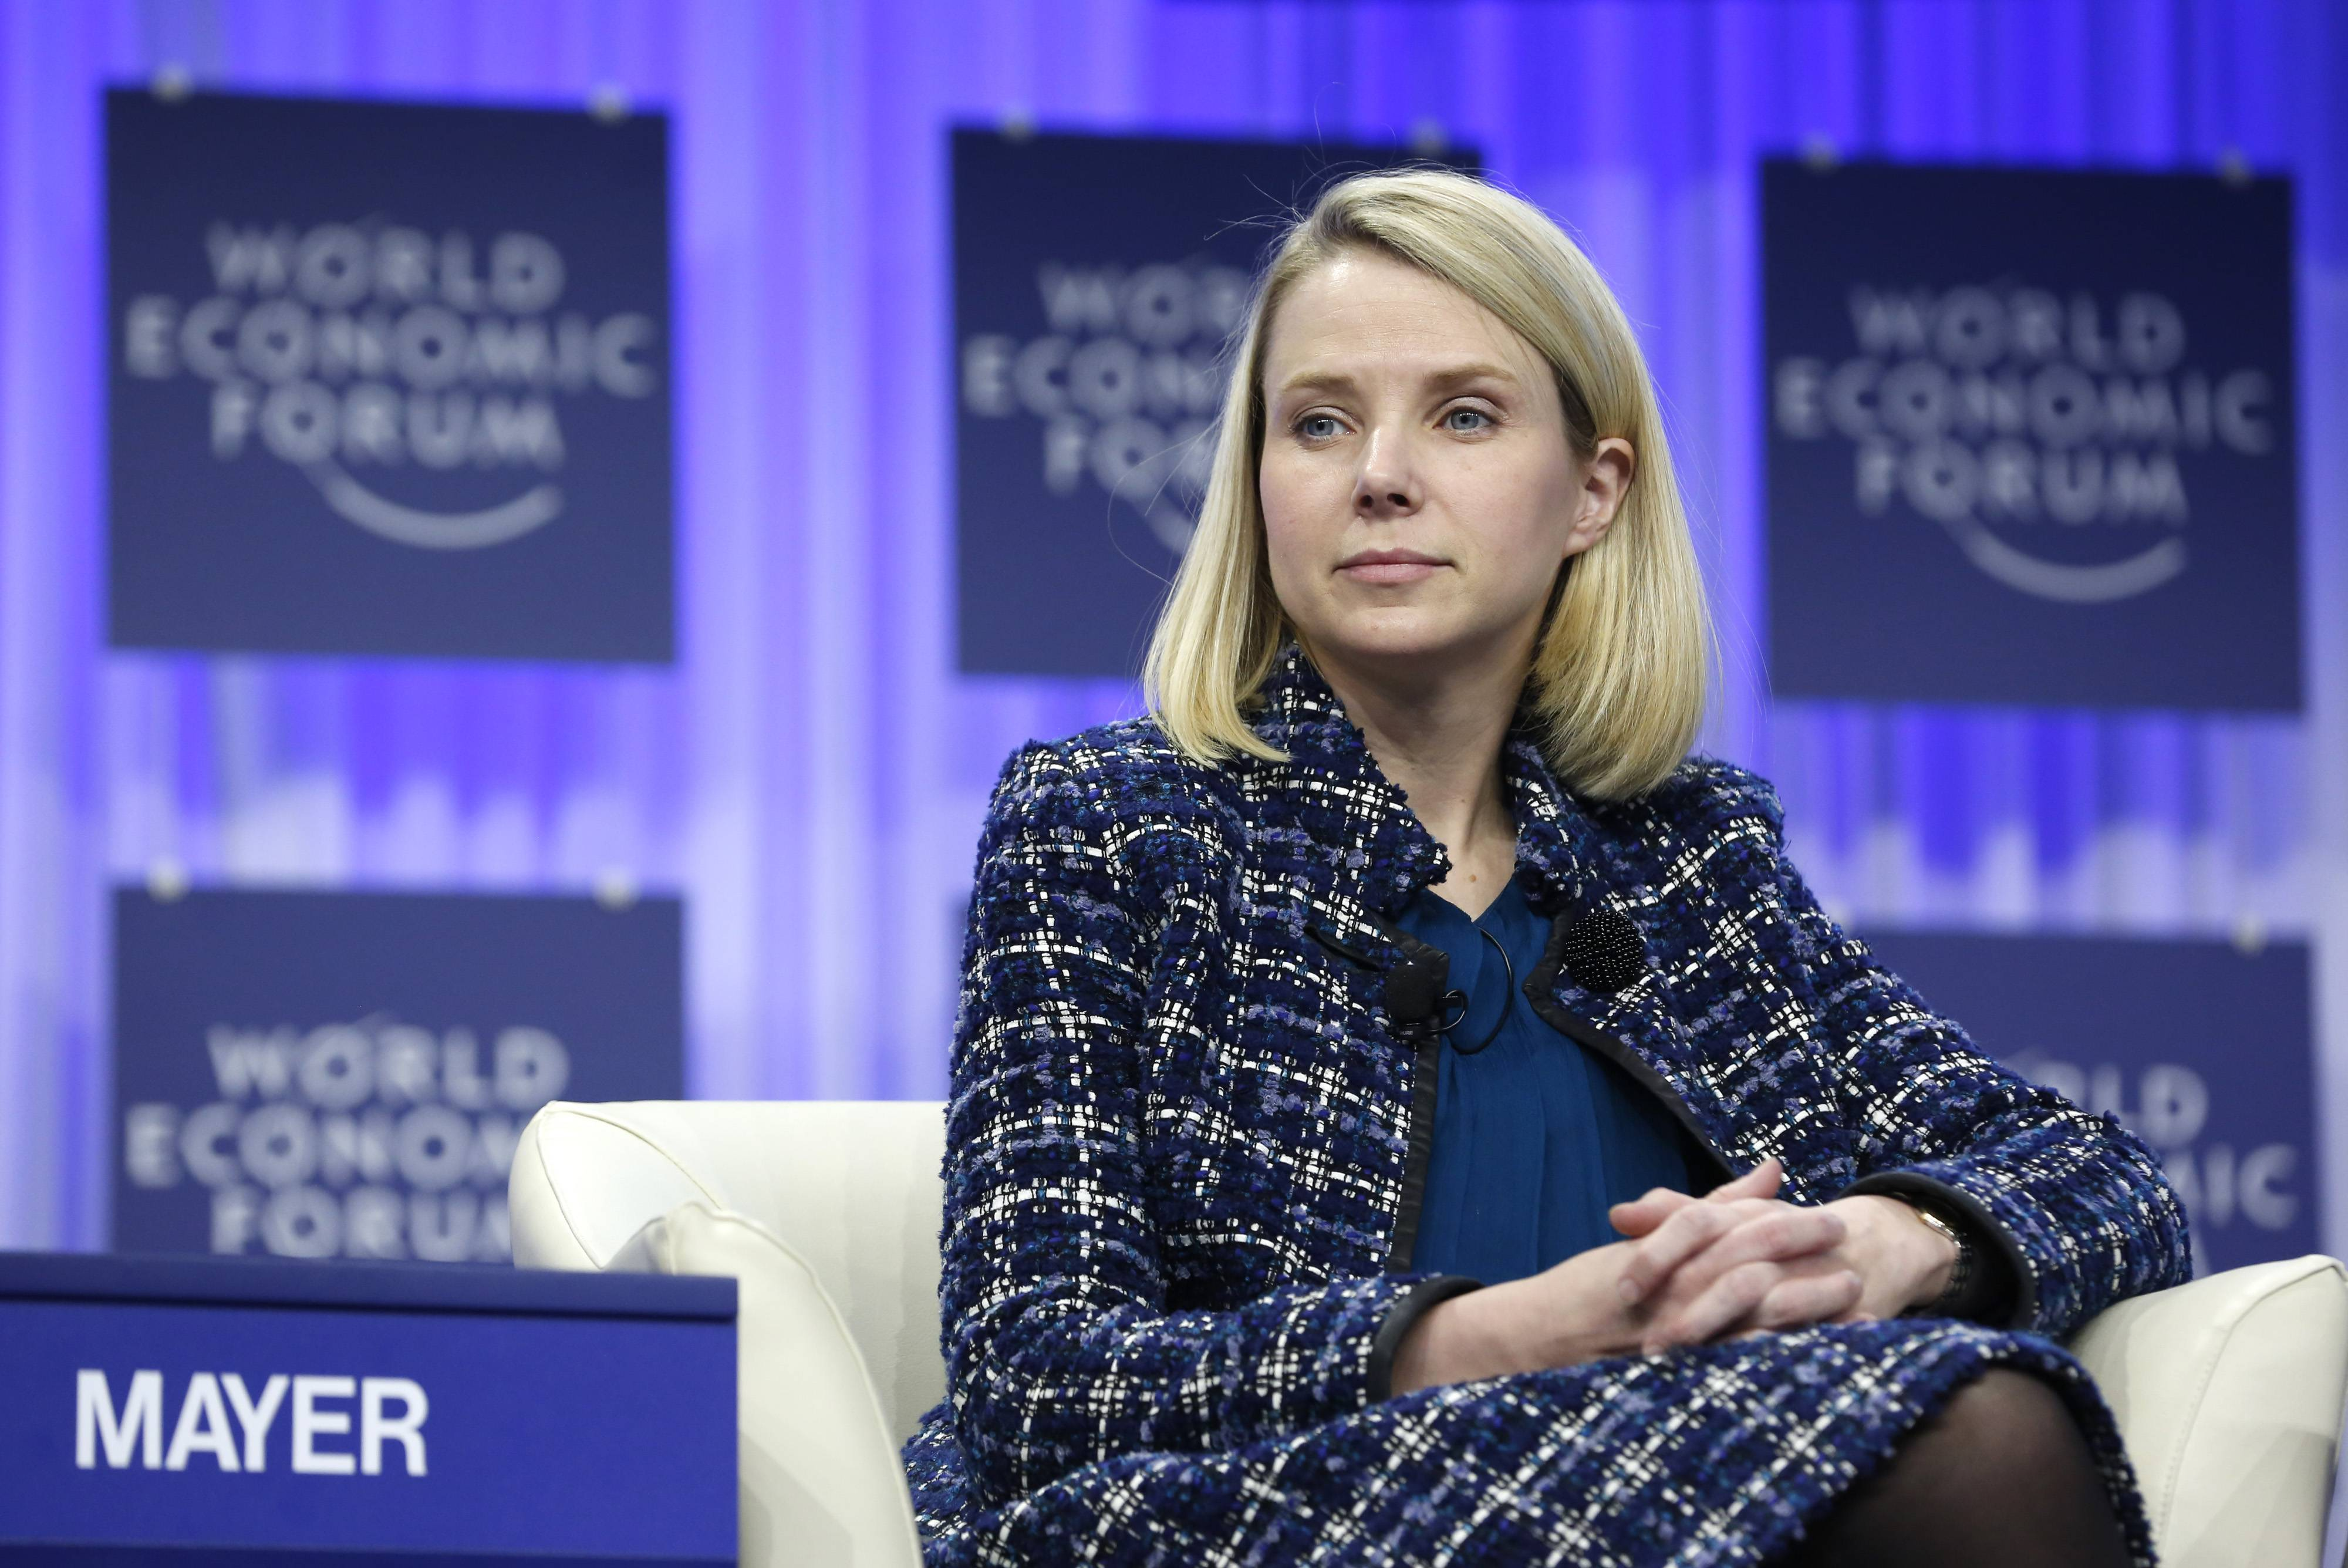 Marissa Mayer, chief executive officer of Yahoo! Inc., pauses during a panel session on day four of the World Economic Forum (WEF) in Davos, Switzerland, on Saturday, Jan. 25, 2014. A report released the week by the Center for Talent Innovation finds that U.S. women working in tech fields are 45 percent more likely than their male peers to leave the industry within a year.